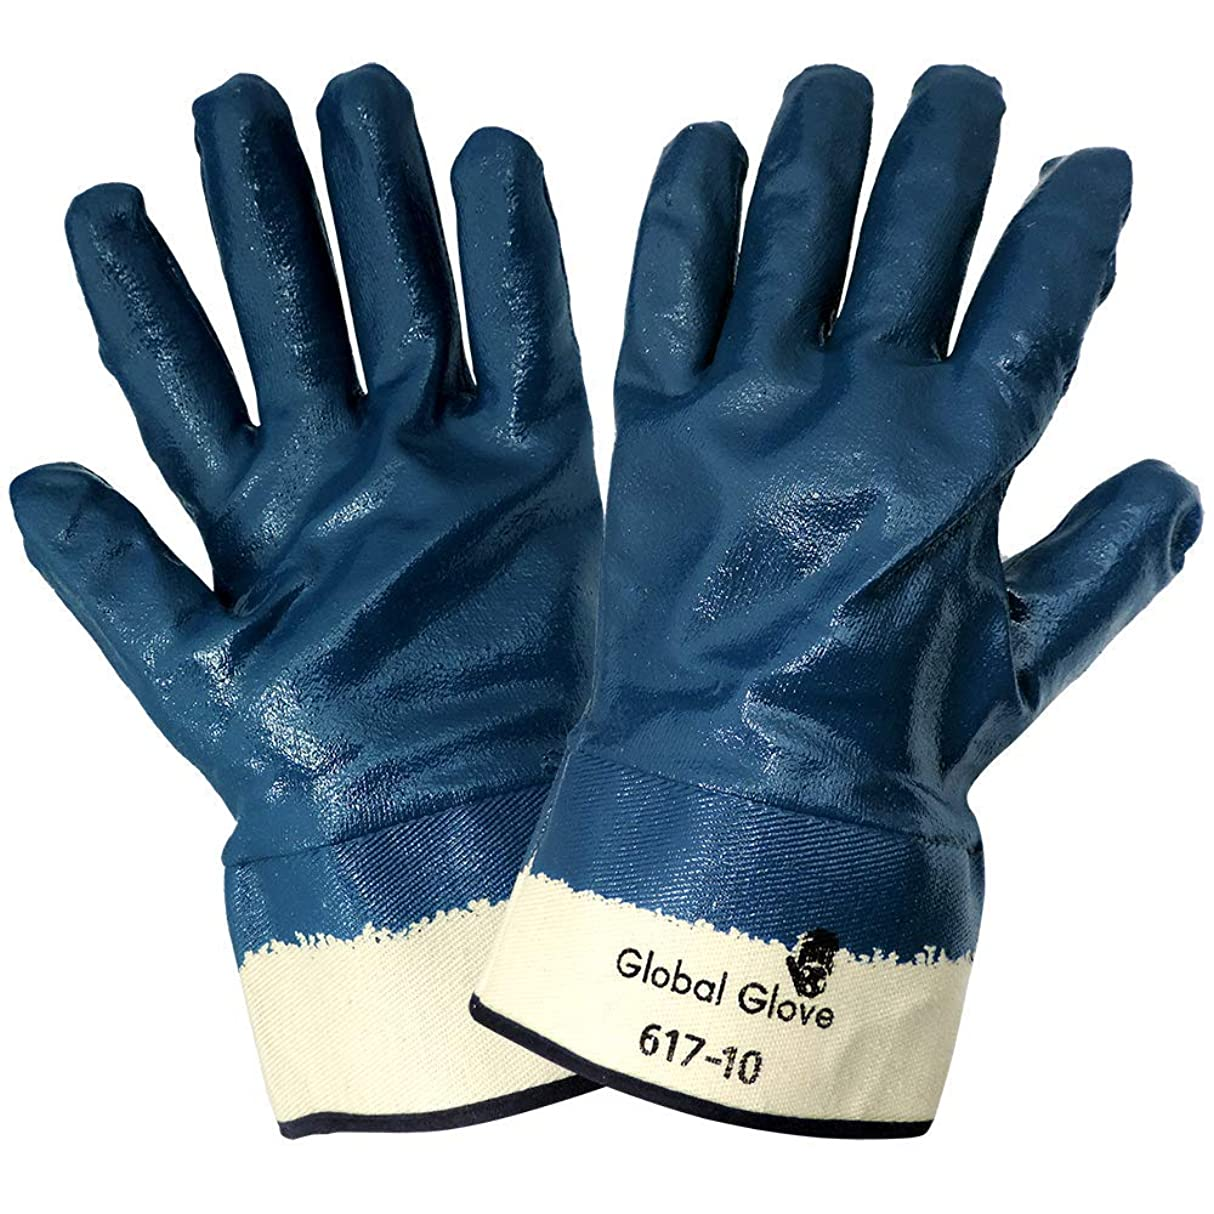 ルネッサンス十分に倍率Global Glove 617 Fully Nitrile Dipped on 2 Piece Jersey Liner Glove with Safety Cuff, Chemical Resistent, Extra Large, Light Blue (Case of 72) by Global Glove